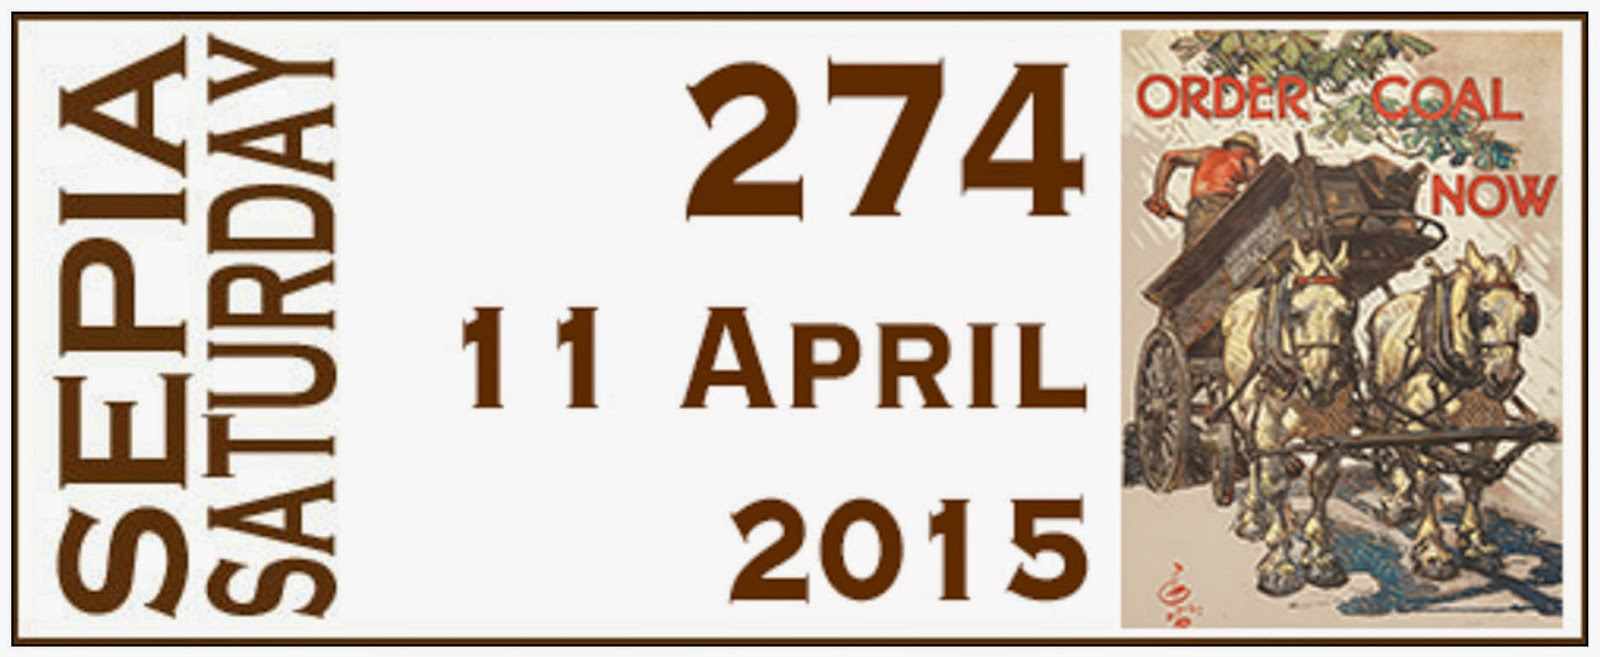 http://sepiasaturday.blogspot.com/2015/04/sepia-saturday-274-11-april-2015.html